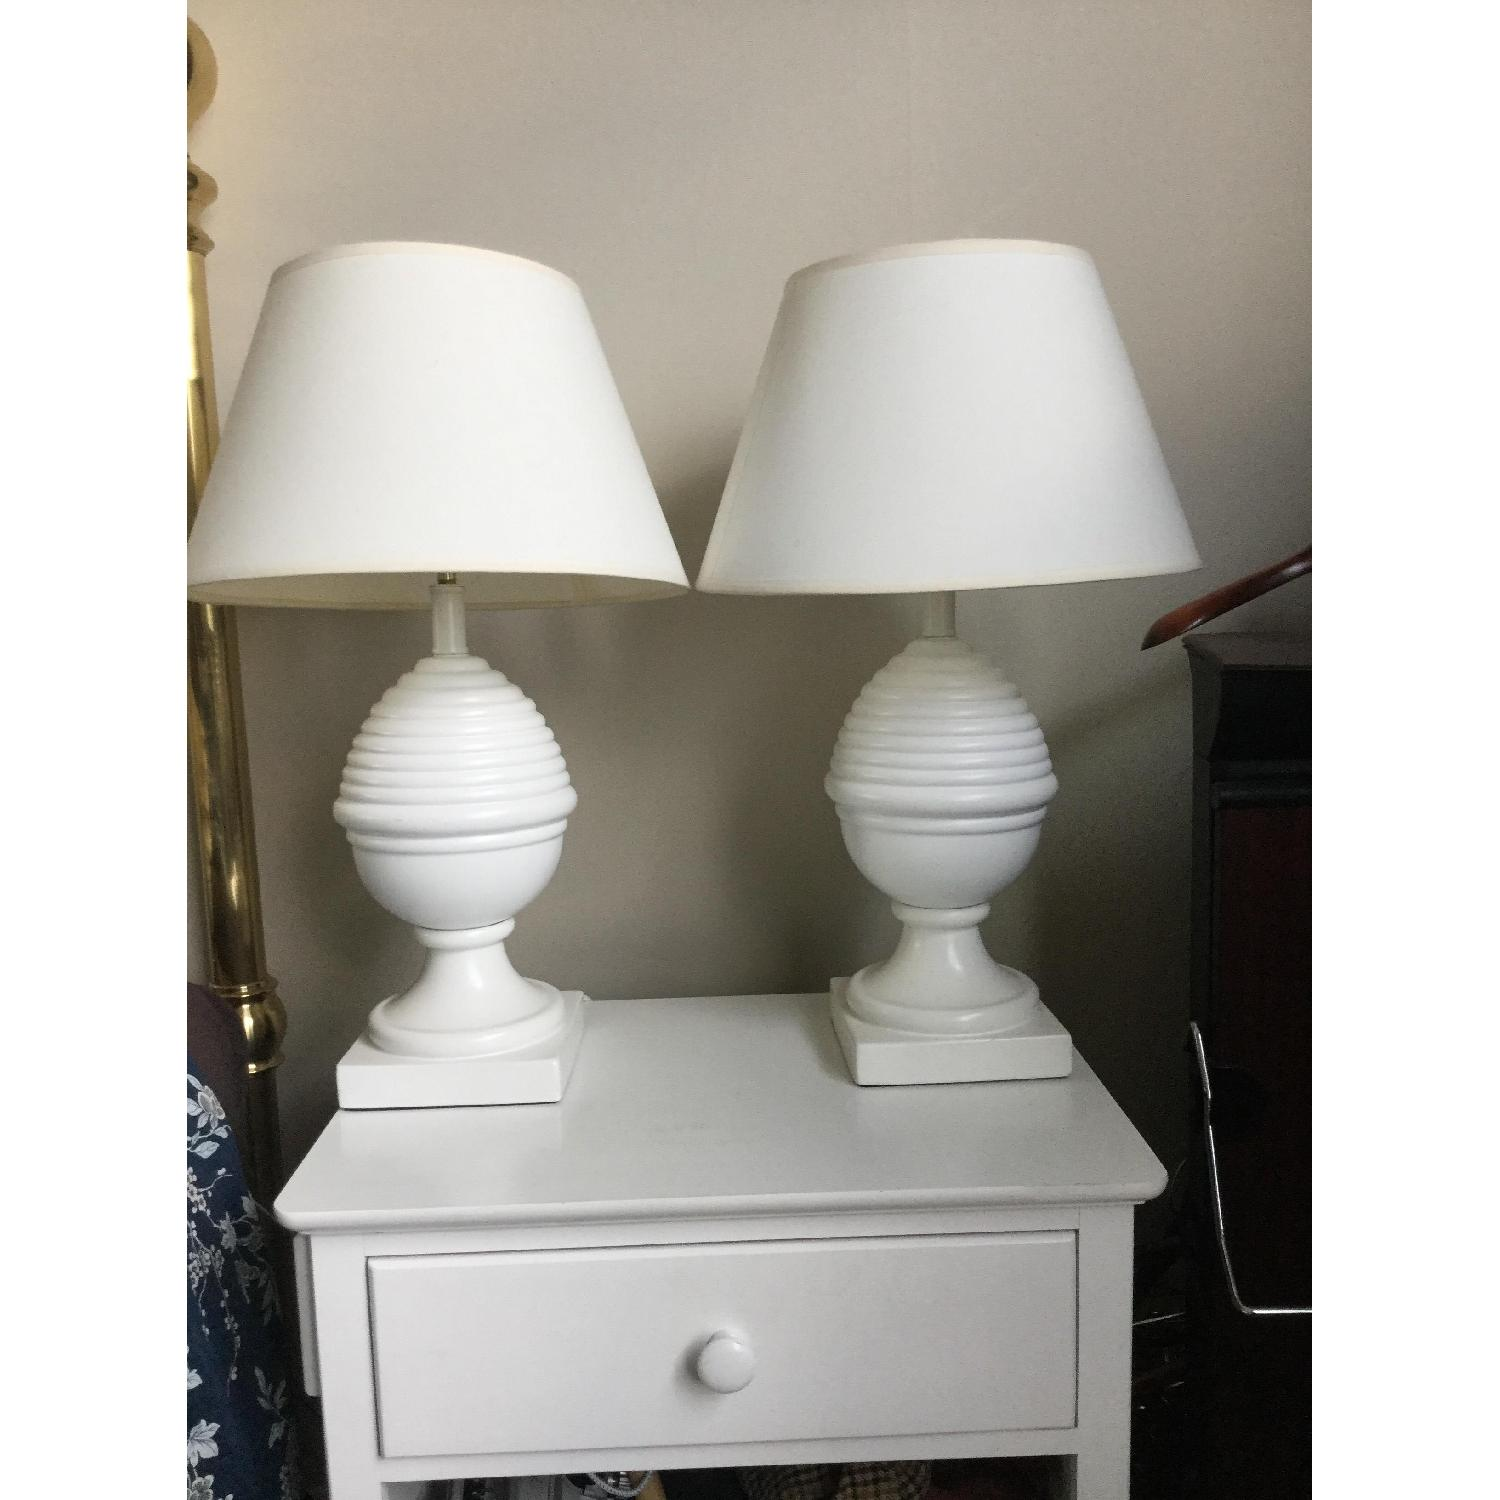 Matching White Lamps - image-1